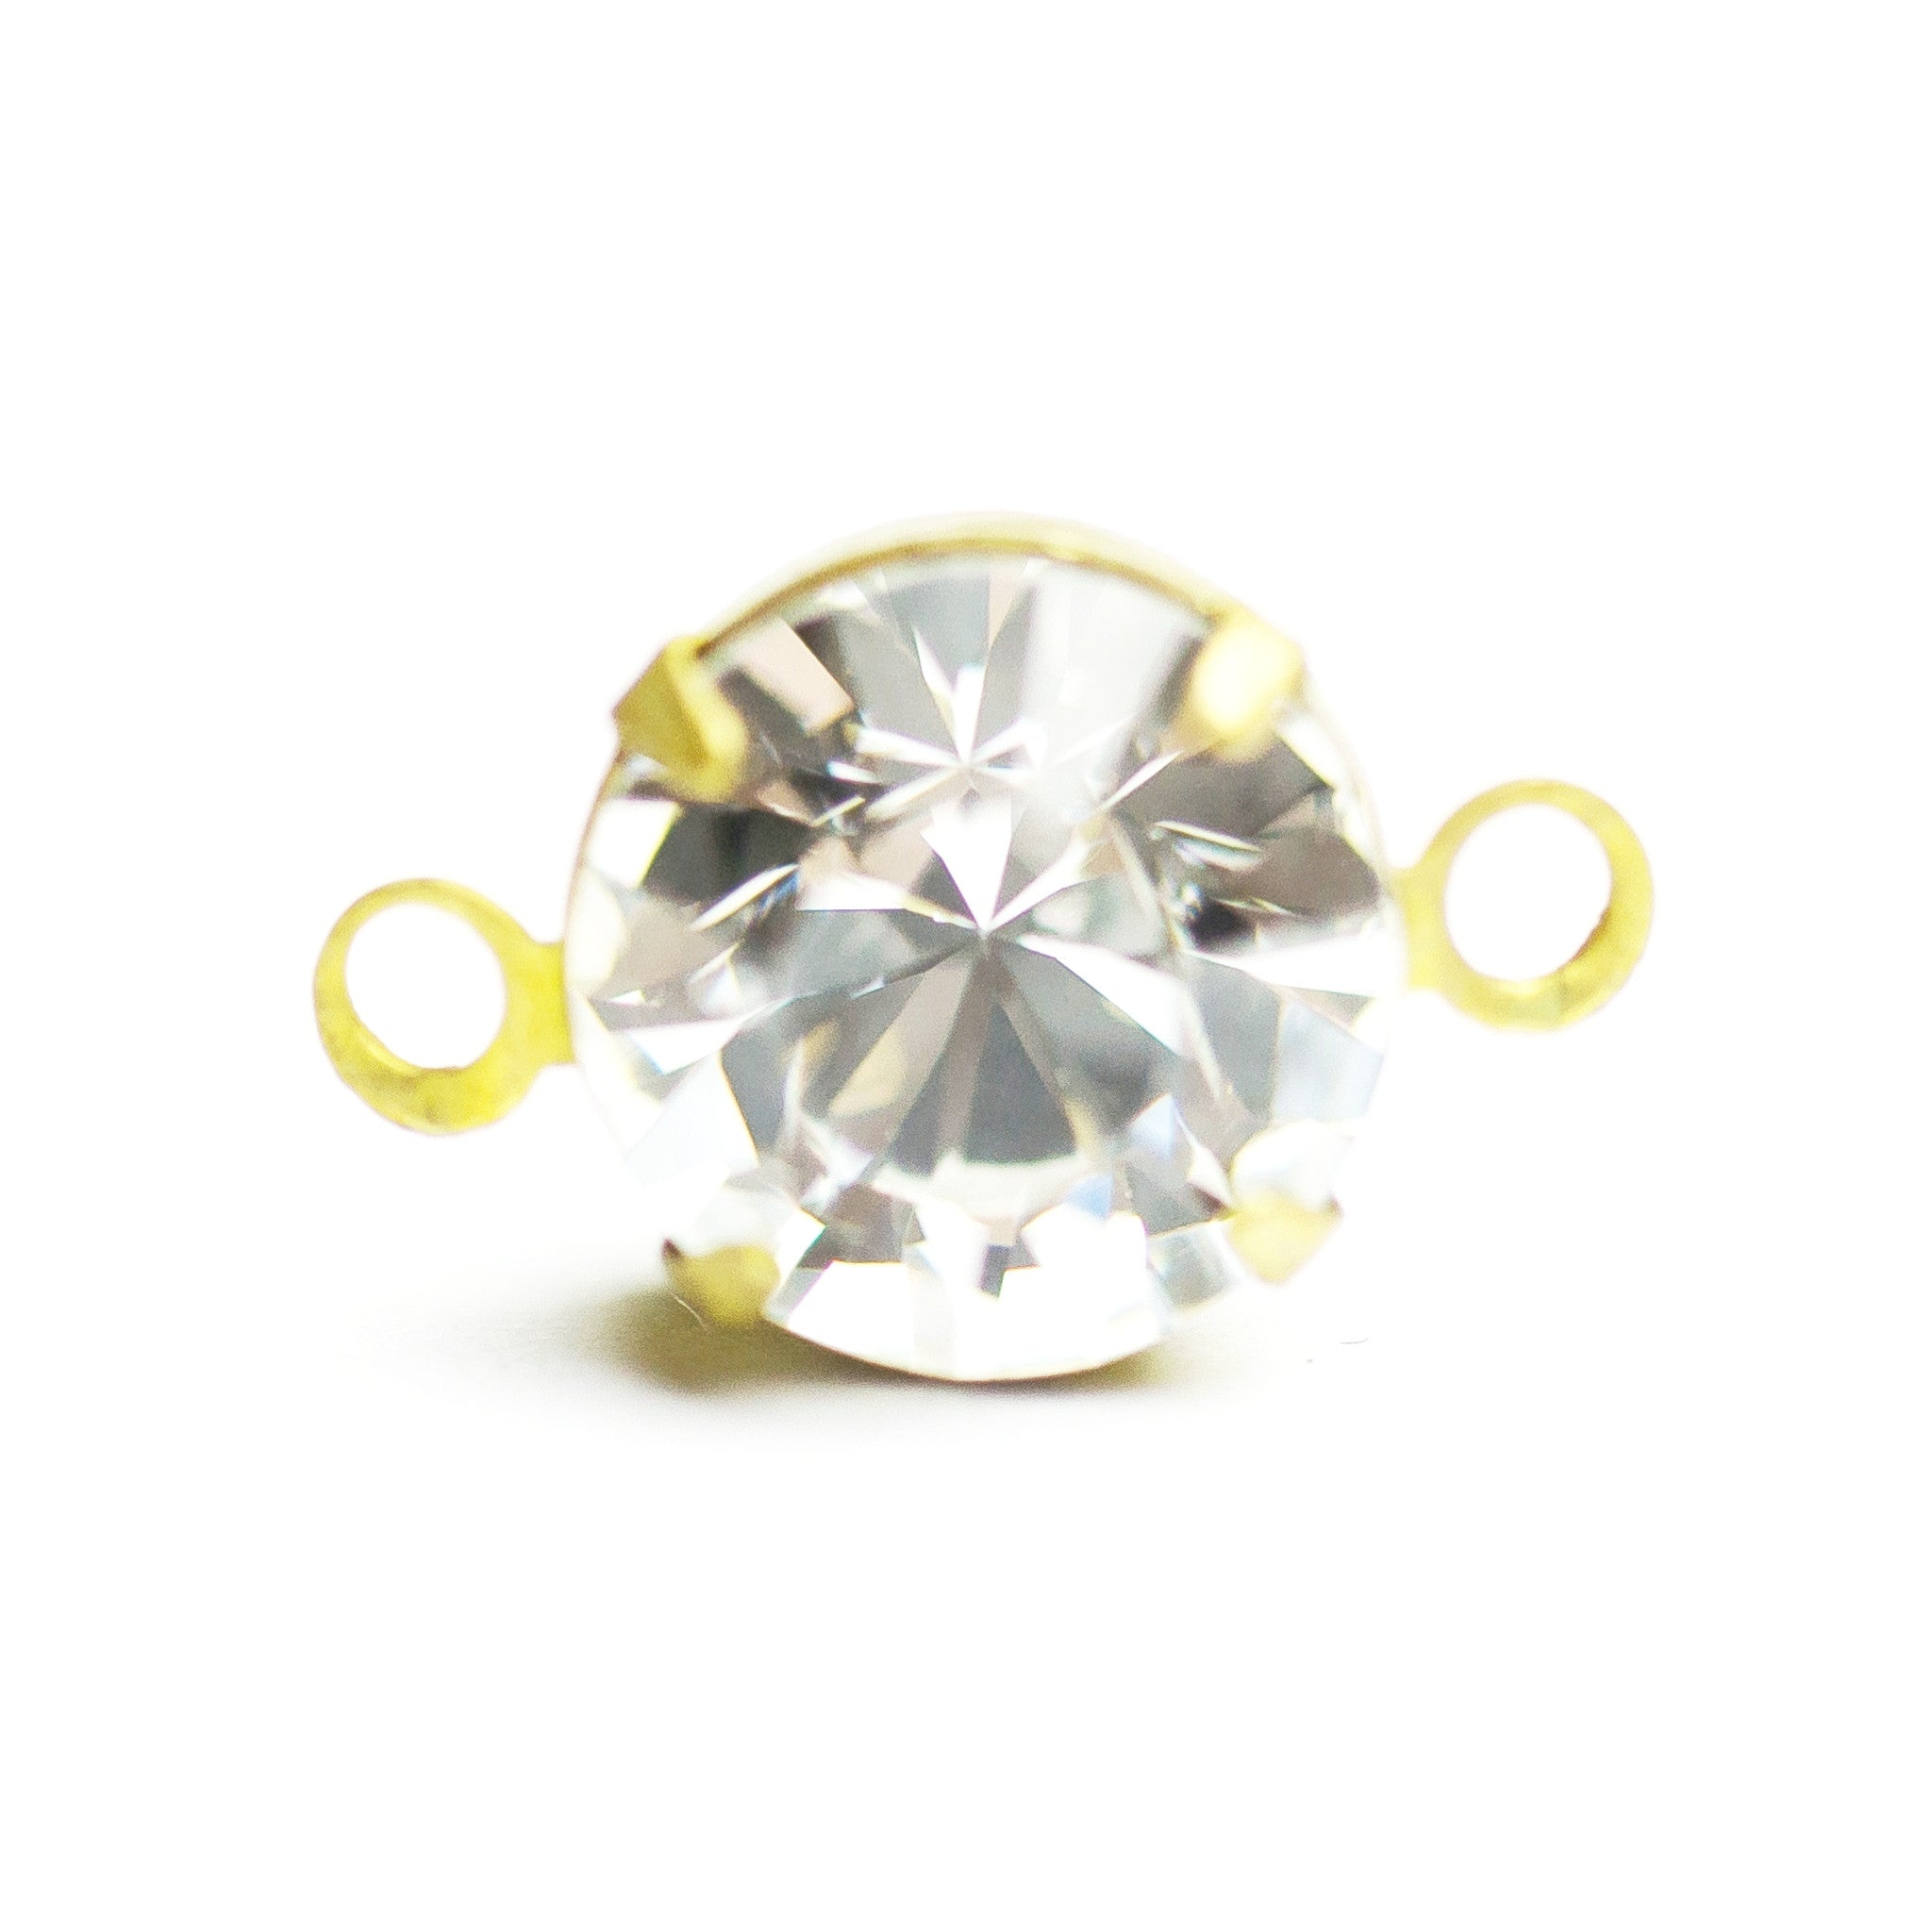 Pp24 2-Ring Set Crystal/Brass (36 pieces)